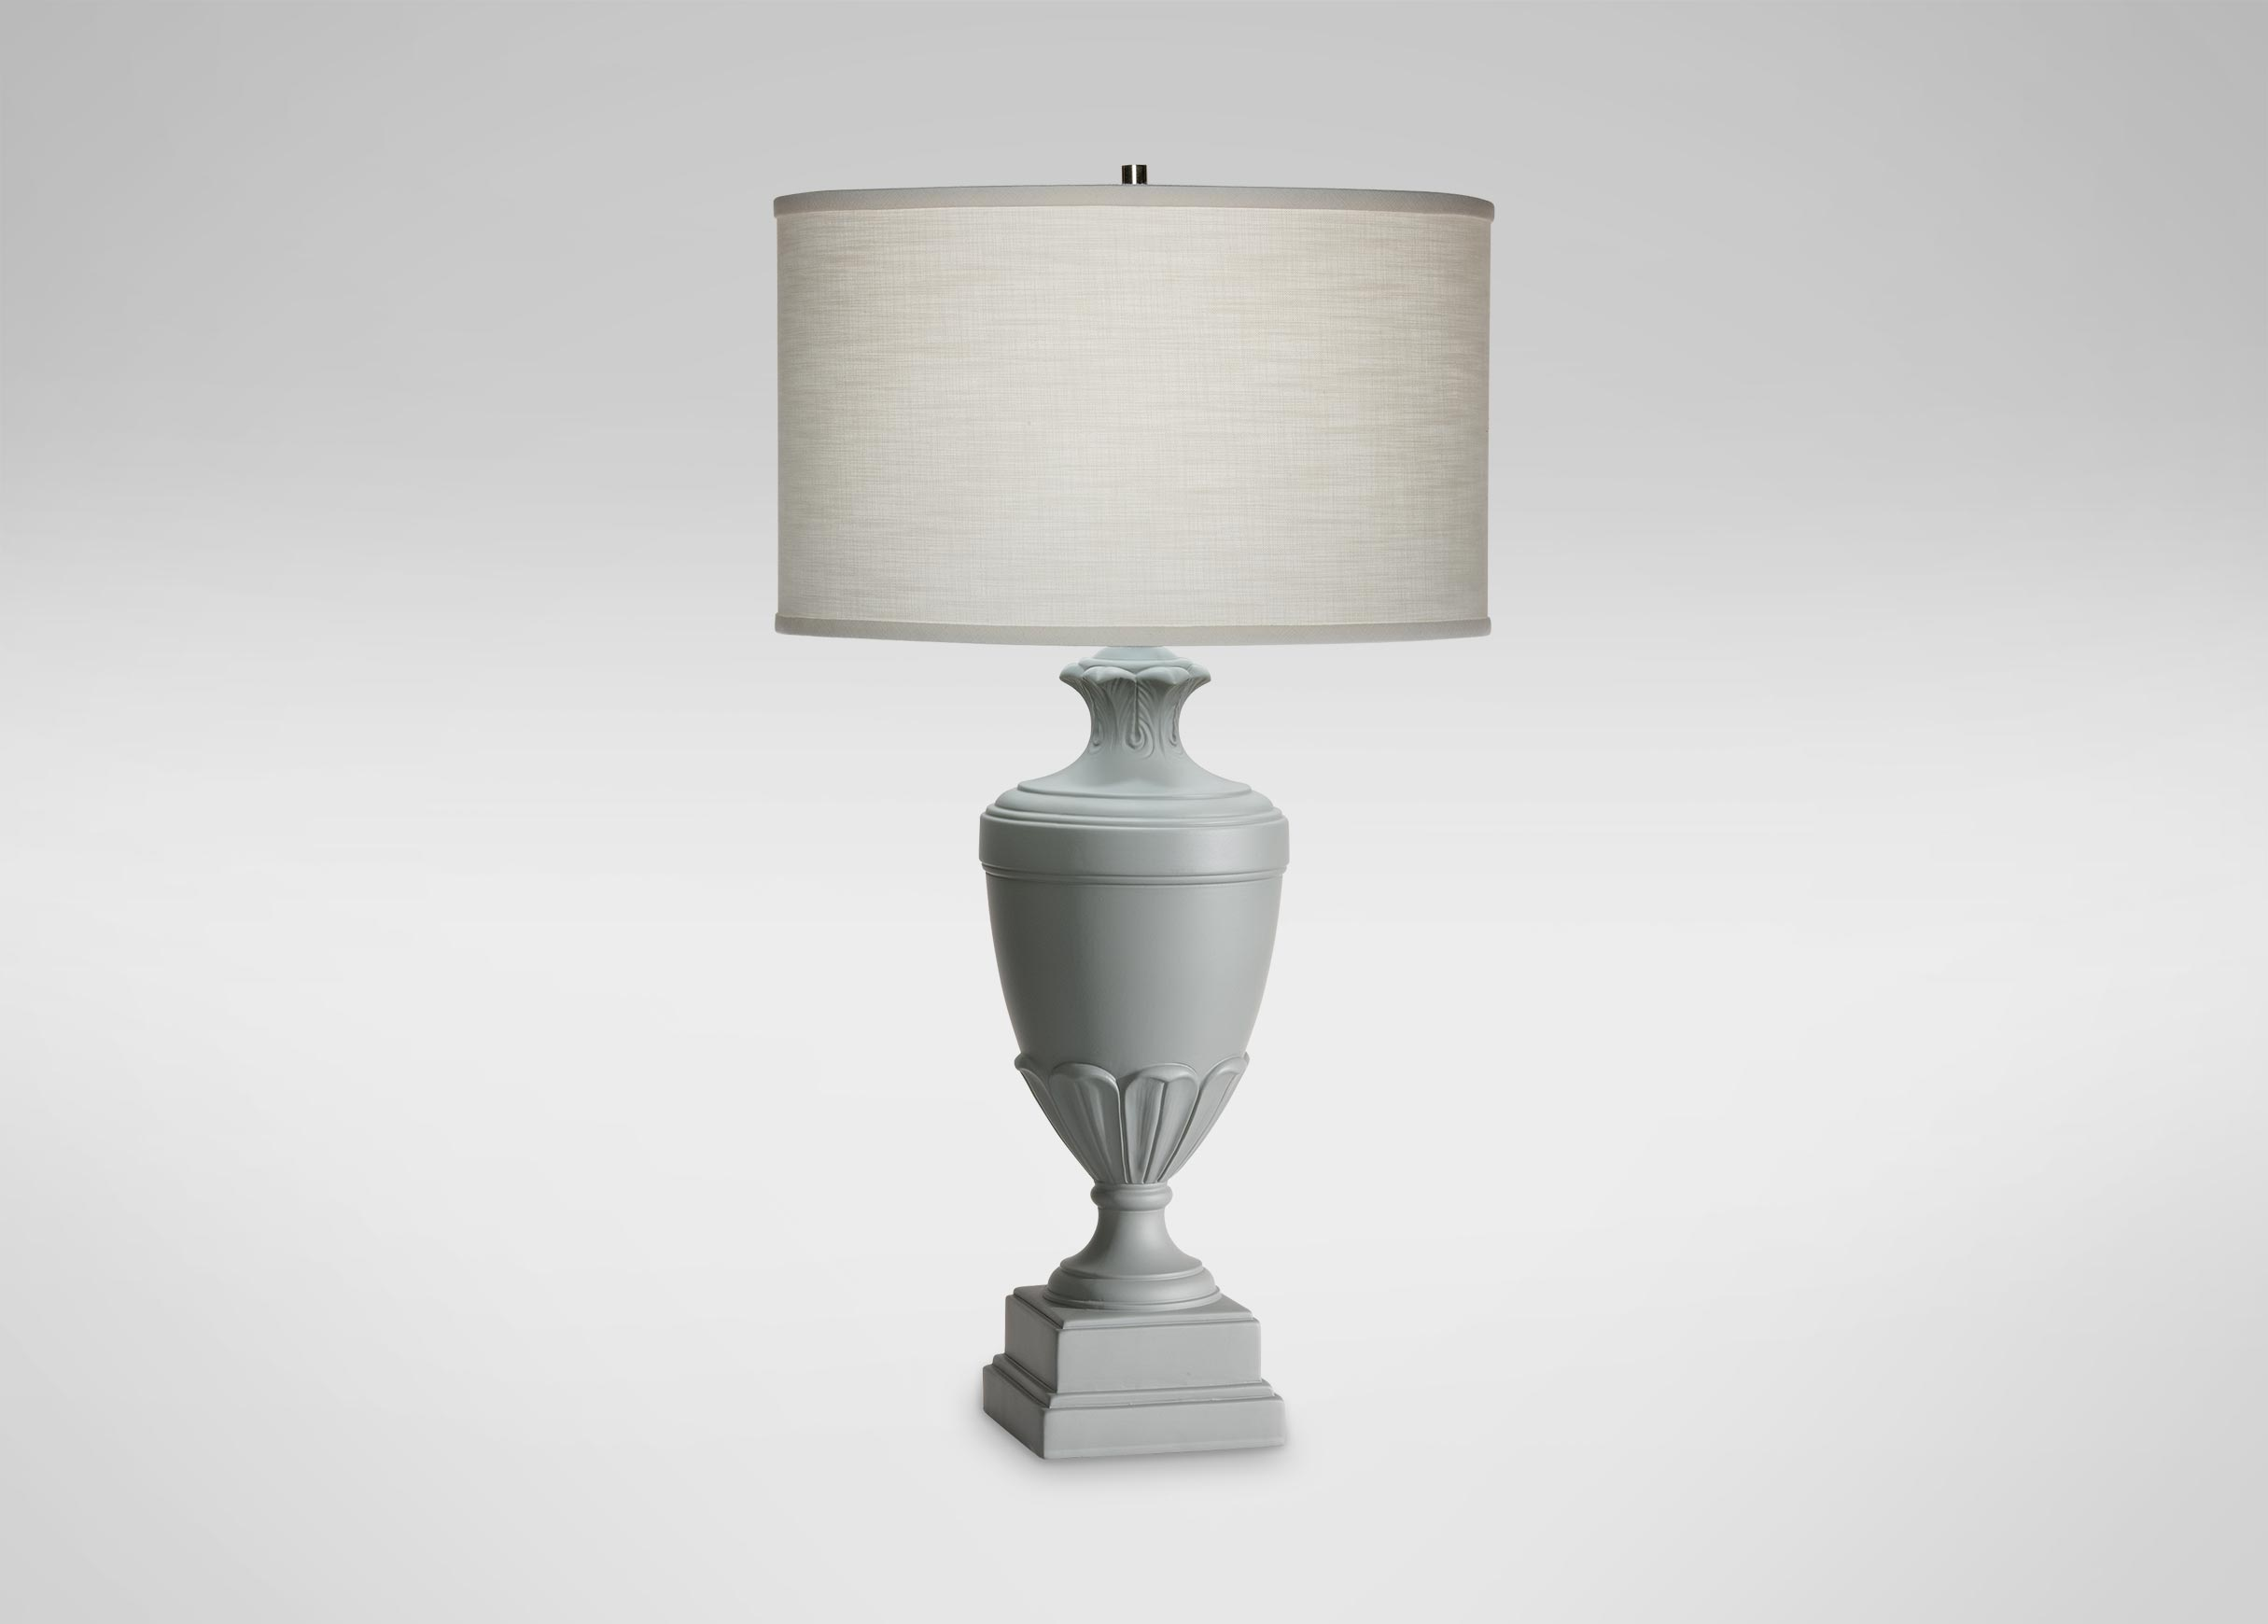 Shop table lamps lighting collections ethan allen livadia table lamp large geotapseo Images